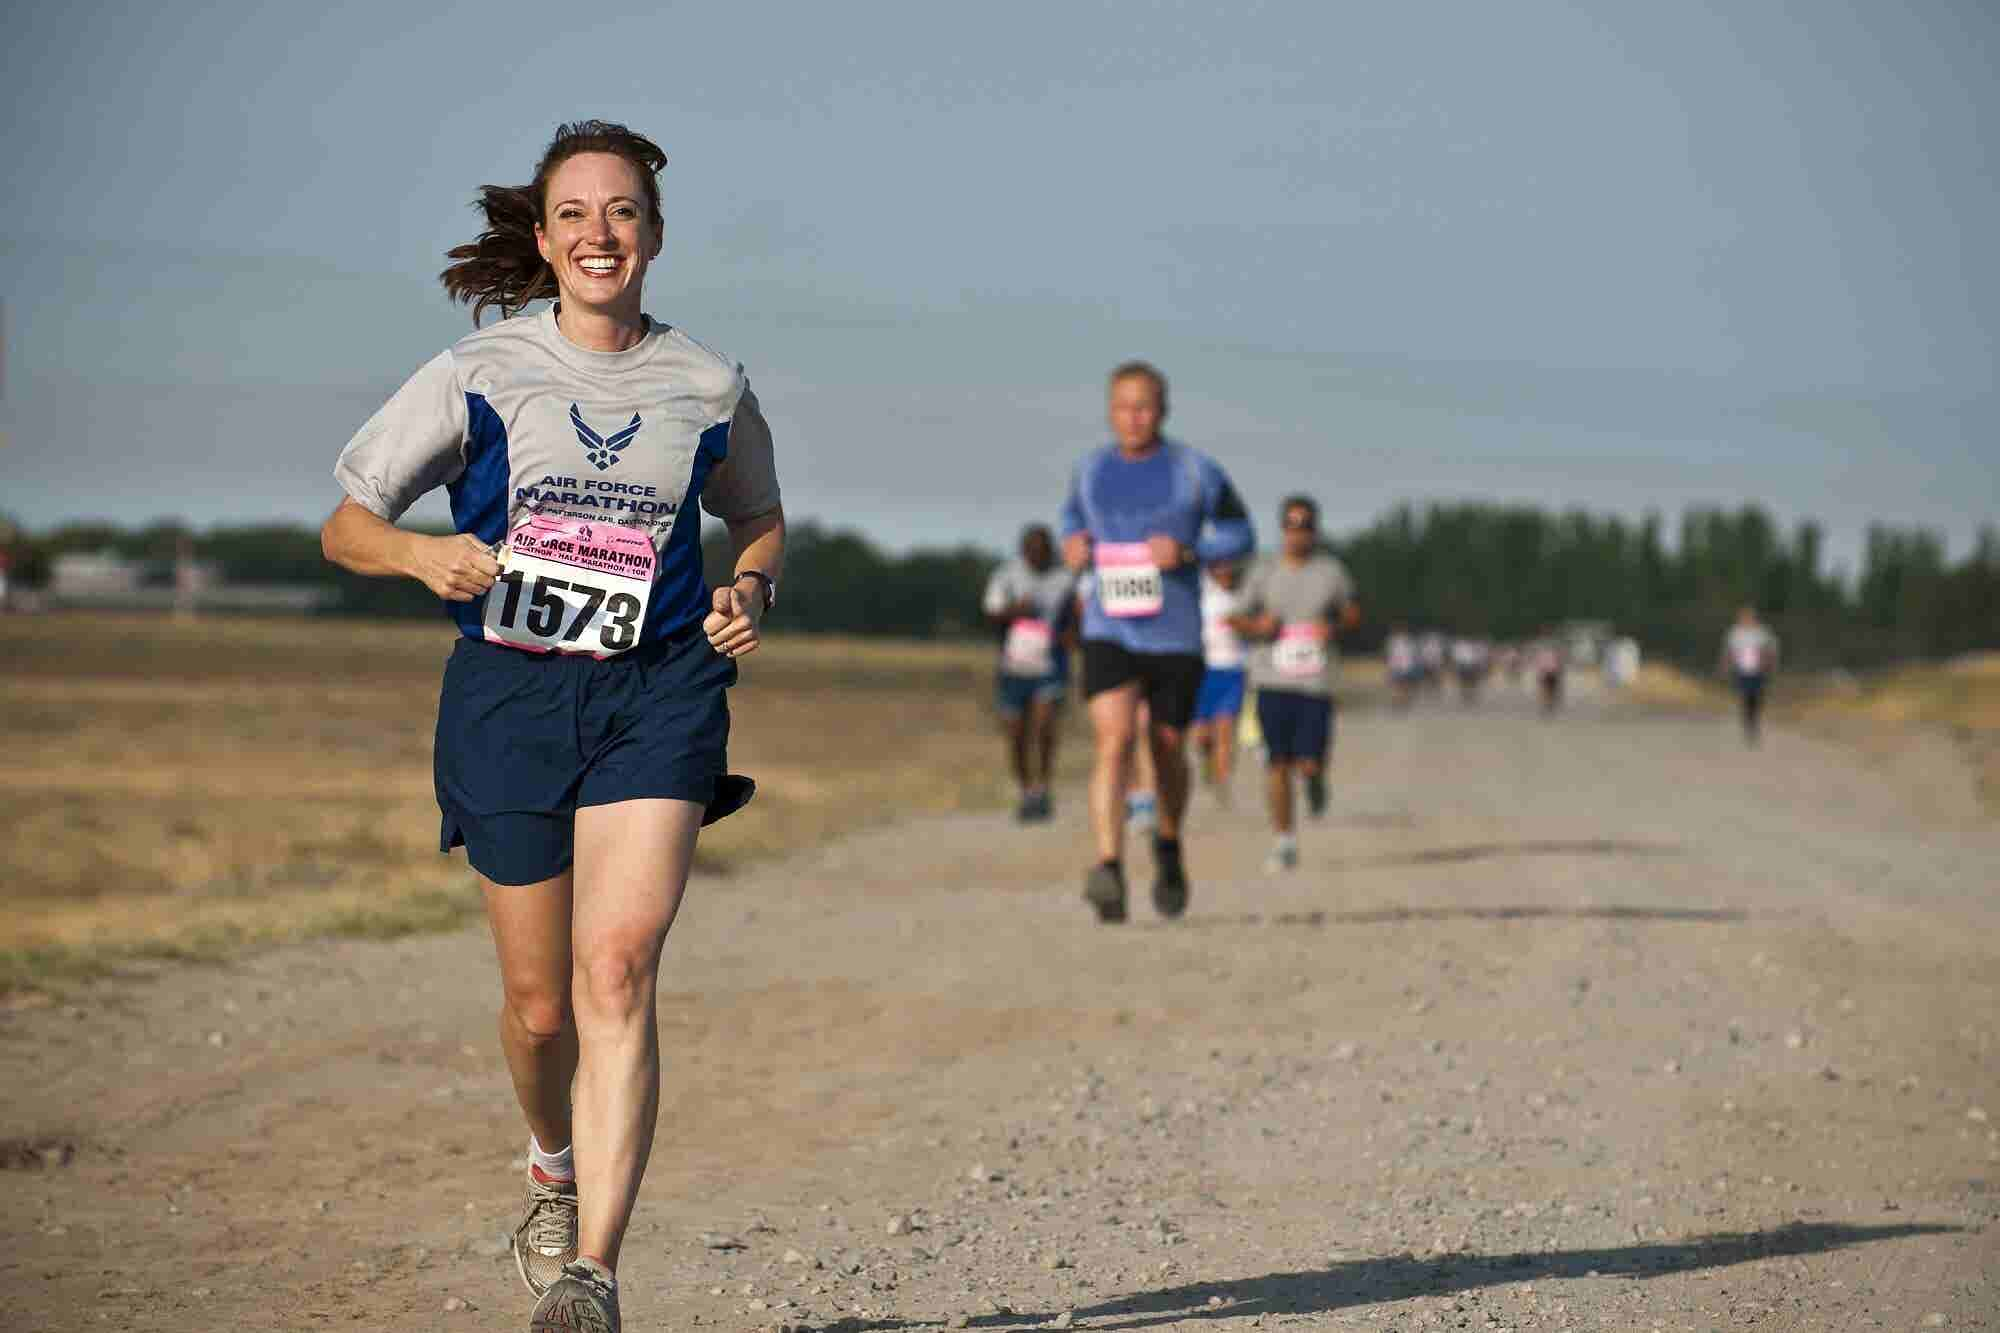 #8 Marathons That Show There Is More To Life Than Just Your Corporate Office